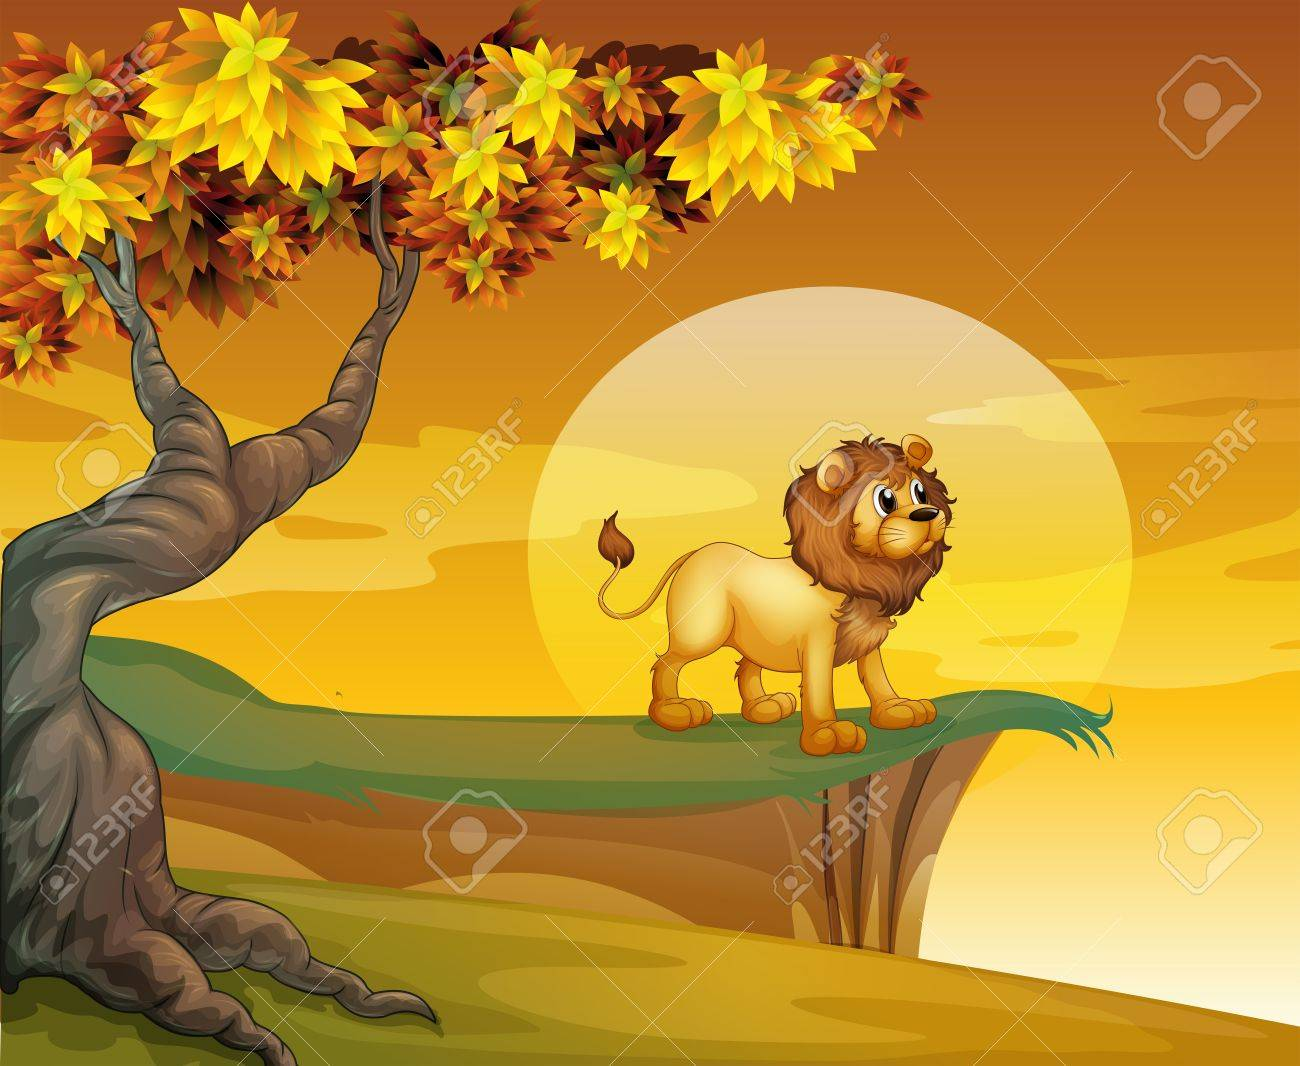 Illustration of a lion near the mountain cliff Stock Vector - 18266267